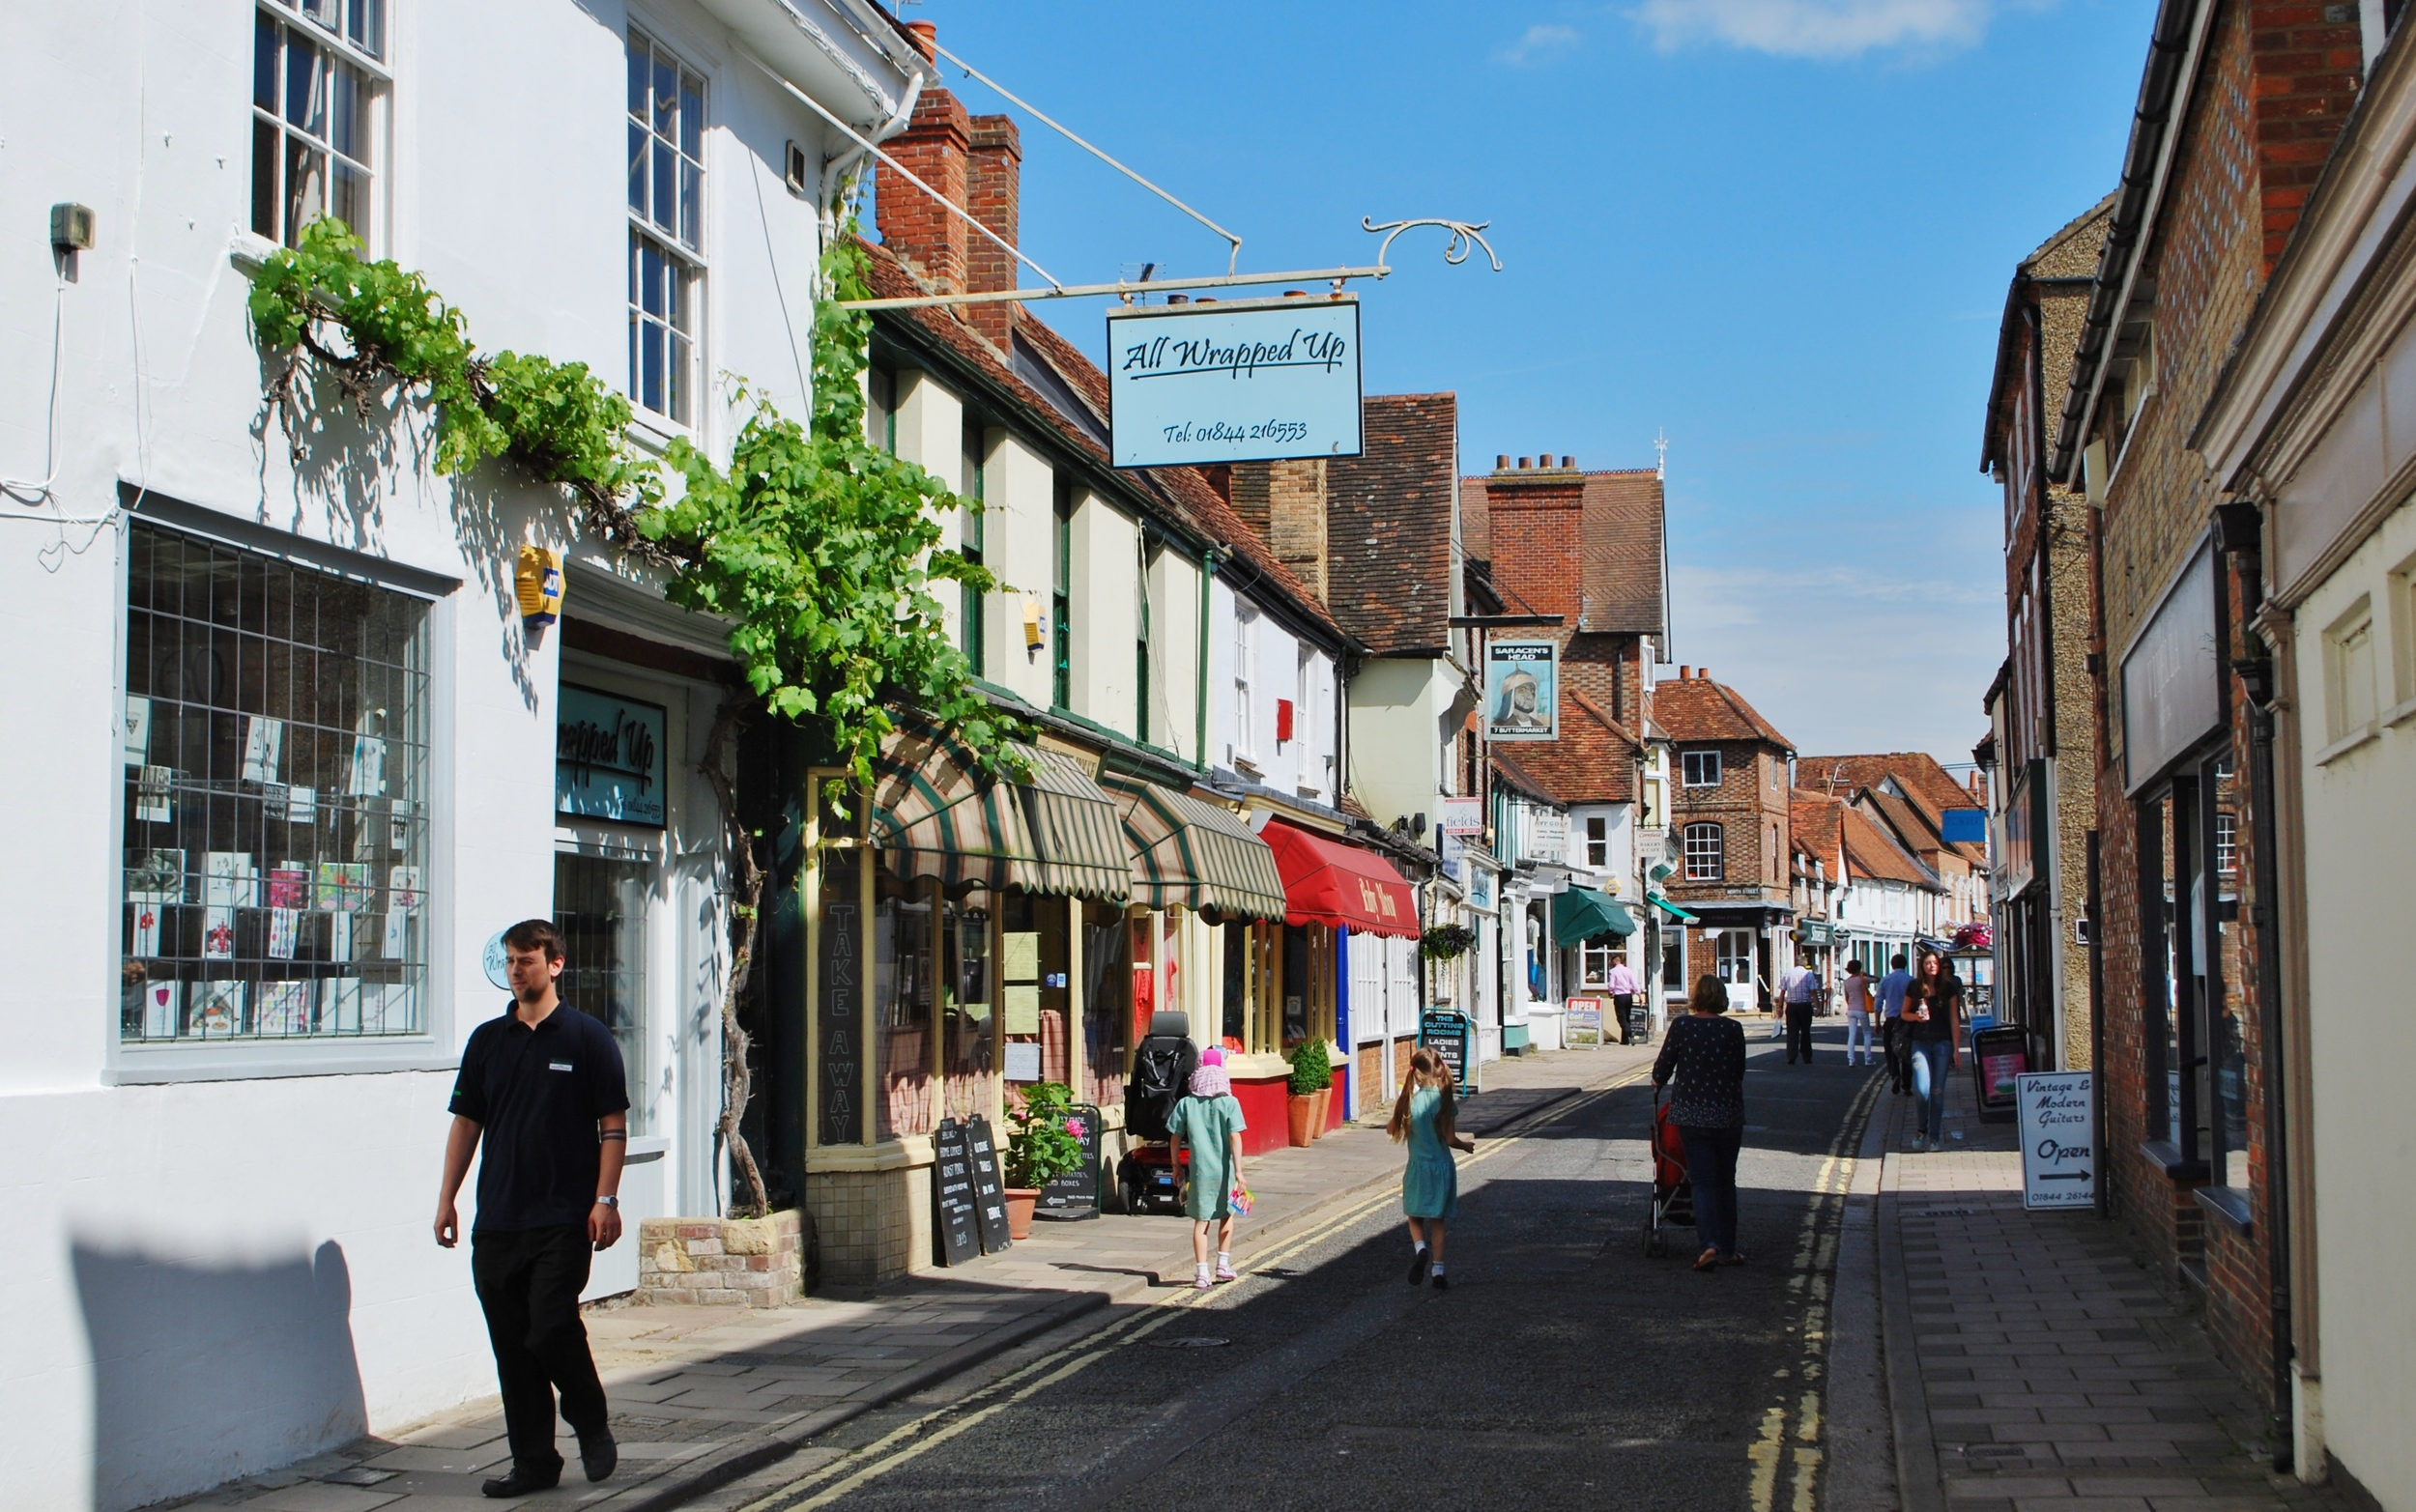 The market town of Thame